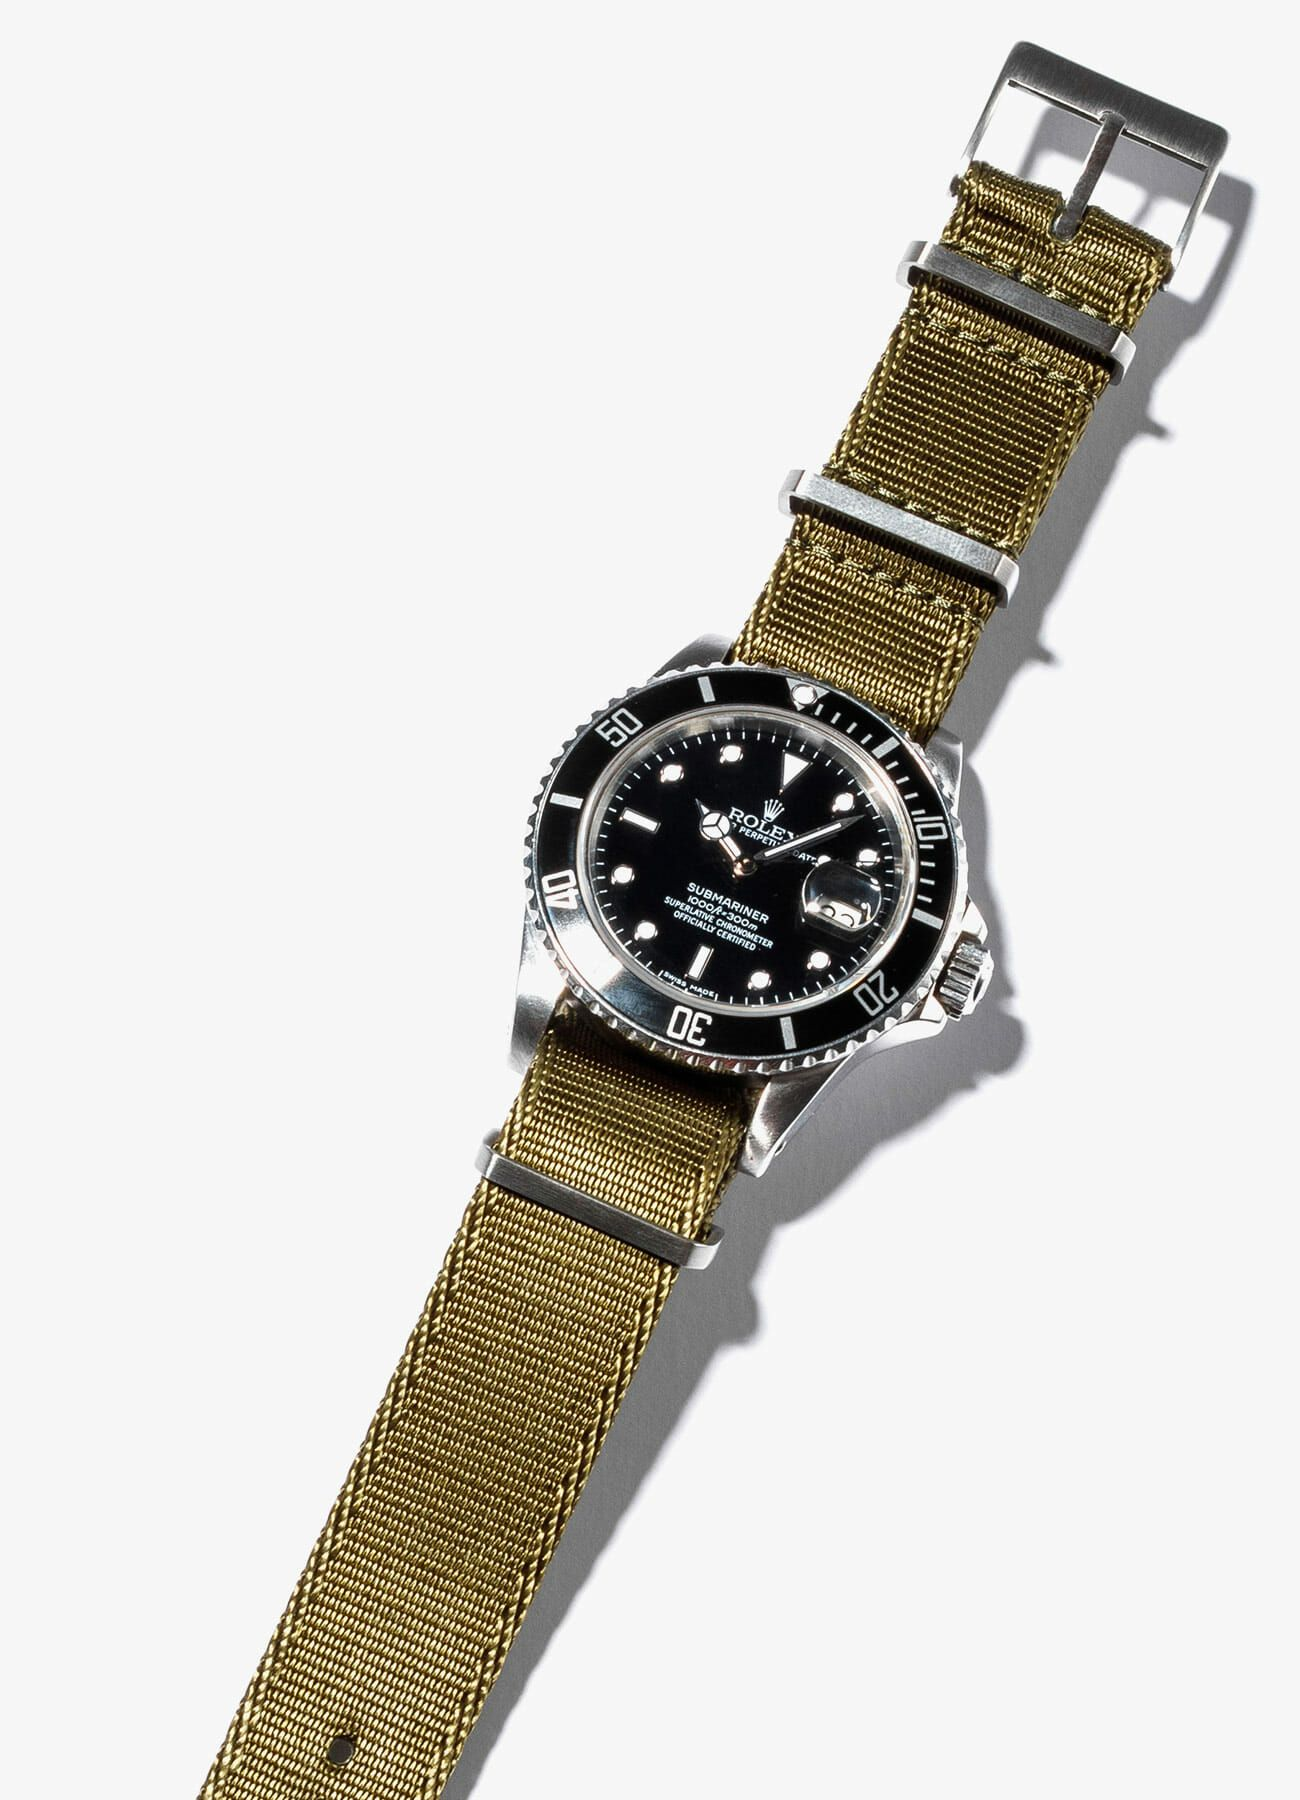 Who Makes The Best NATO Strap? • Gear Patrol